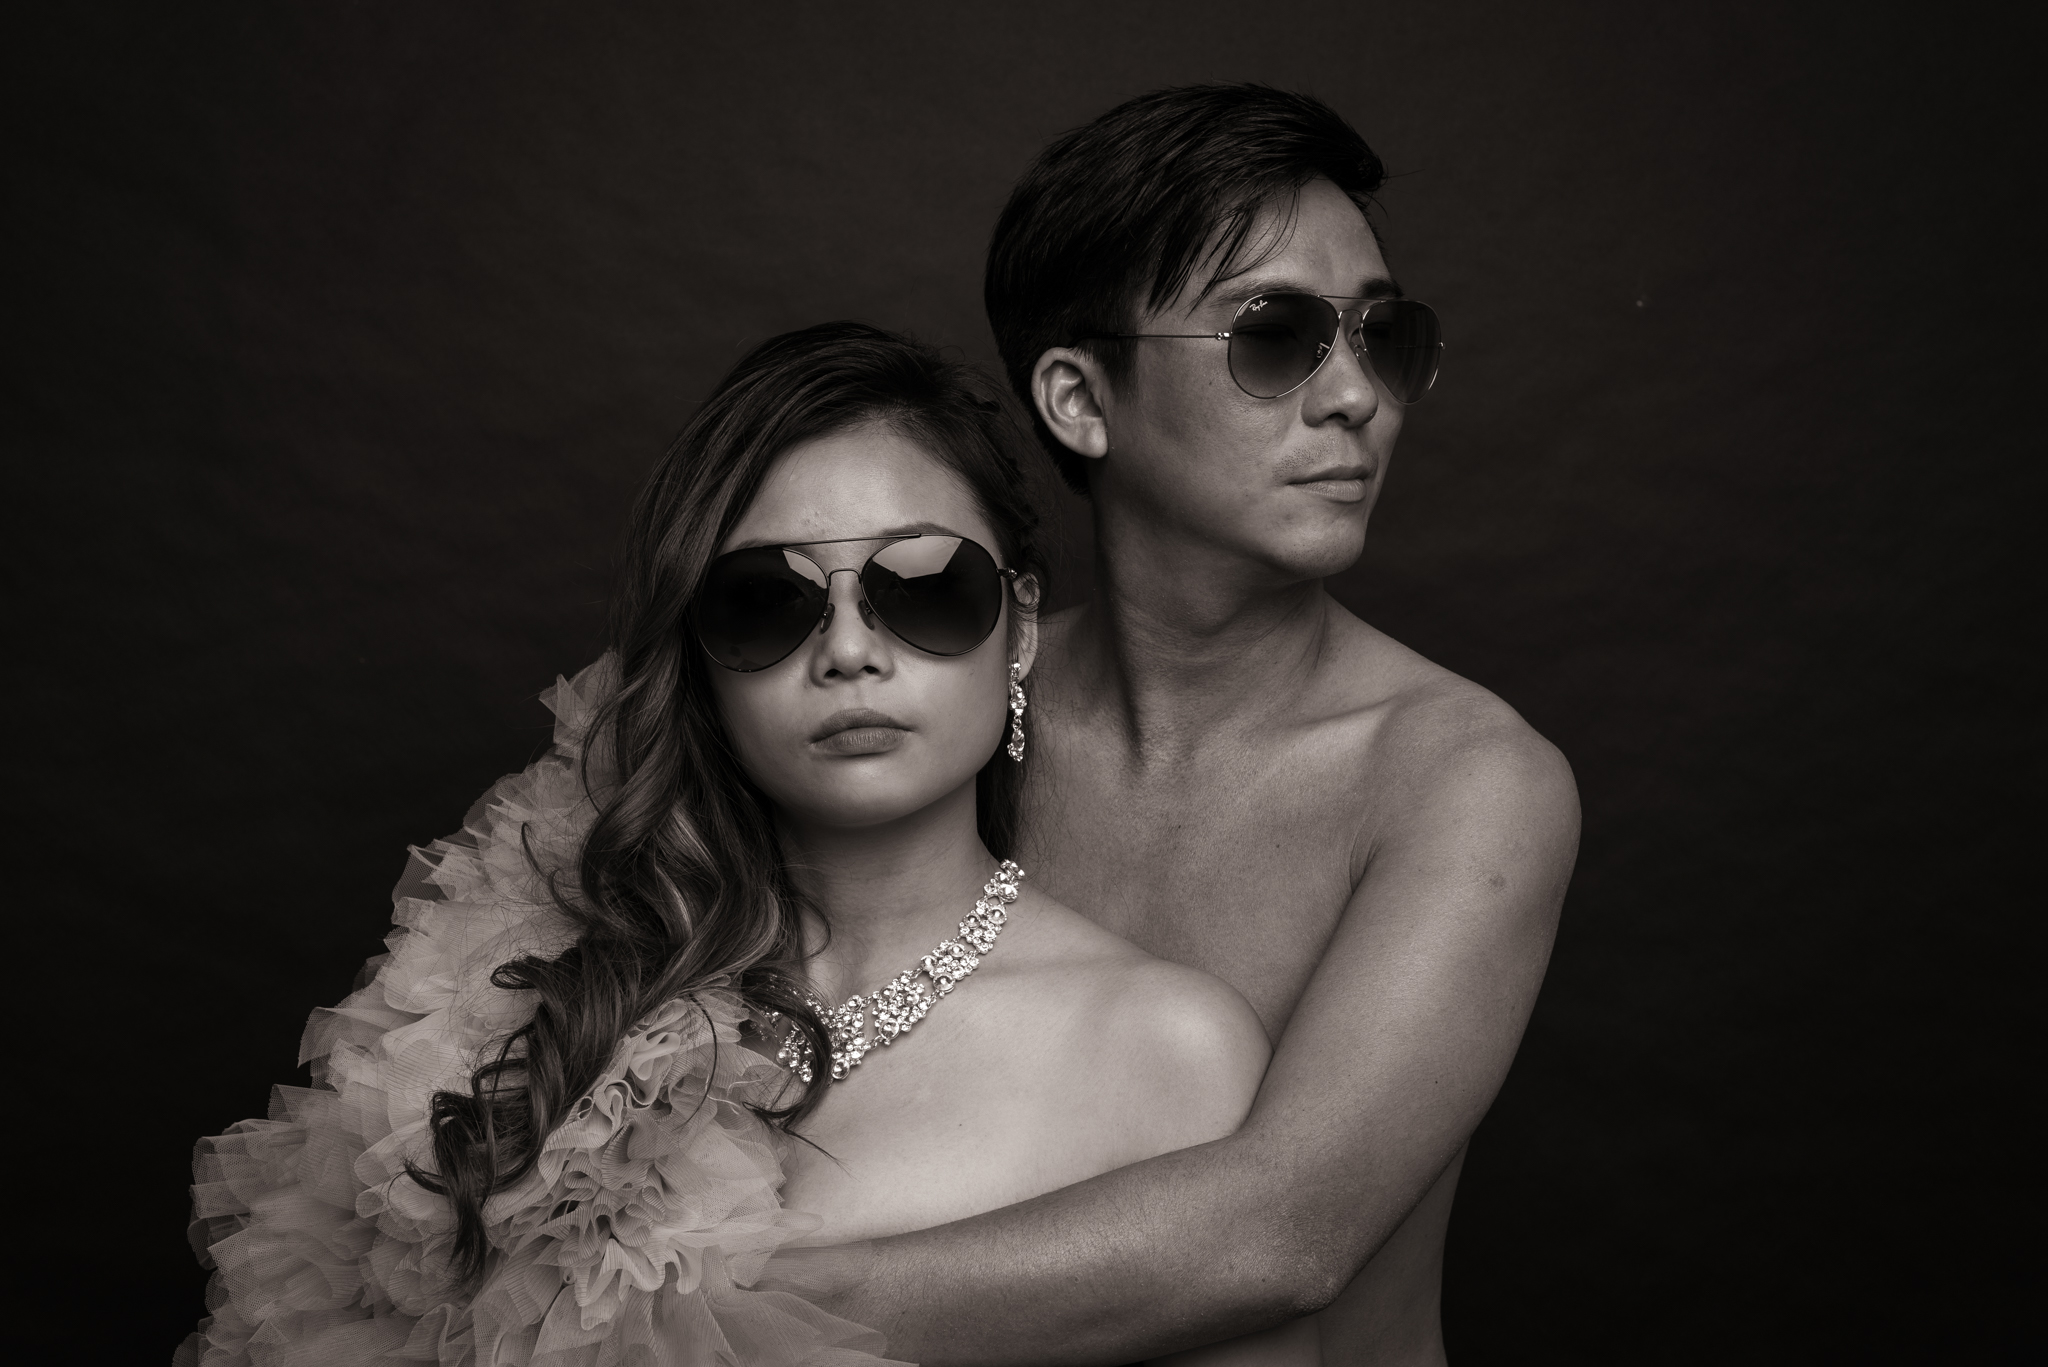 Prewedding Photography - $2588 Includes- 10 hours Photography (Local outdoor)- 1 x Make up and Hairstyling- 2 Gowns and 2 Groom Suits- Transportation and petrol for the whole duration of shoot- 8am to 6pm (weekdays only and includes time for make up)- Top up $300 for night Photography (6pm to 9pm)Terms and Conditions applies.